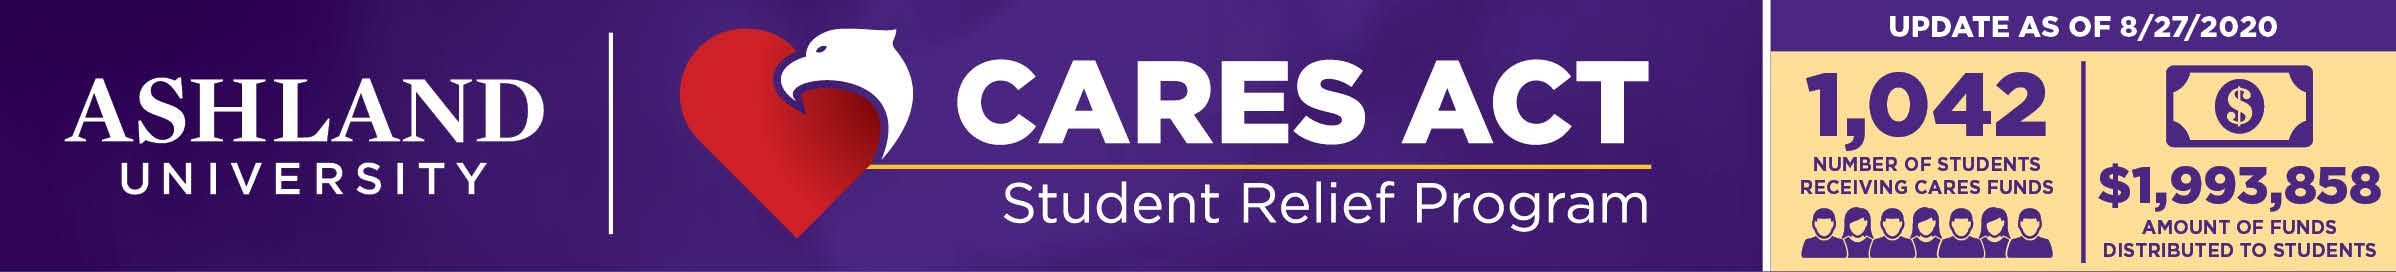 CARES Act Student Relief Program. 1,42 students receiving funds. $1,993,858 distributed to students.